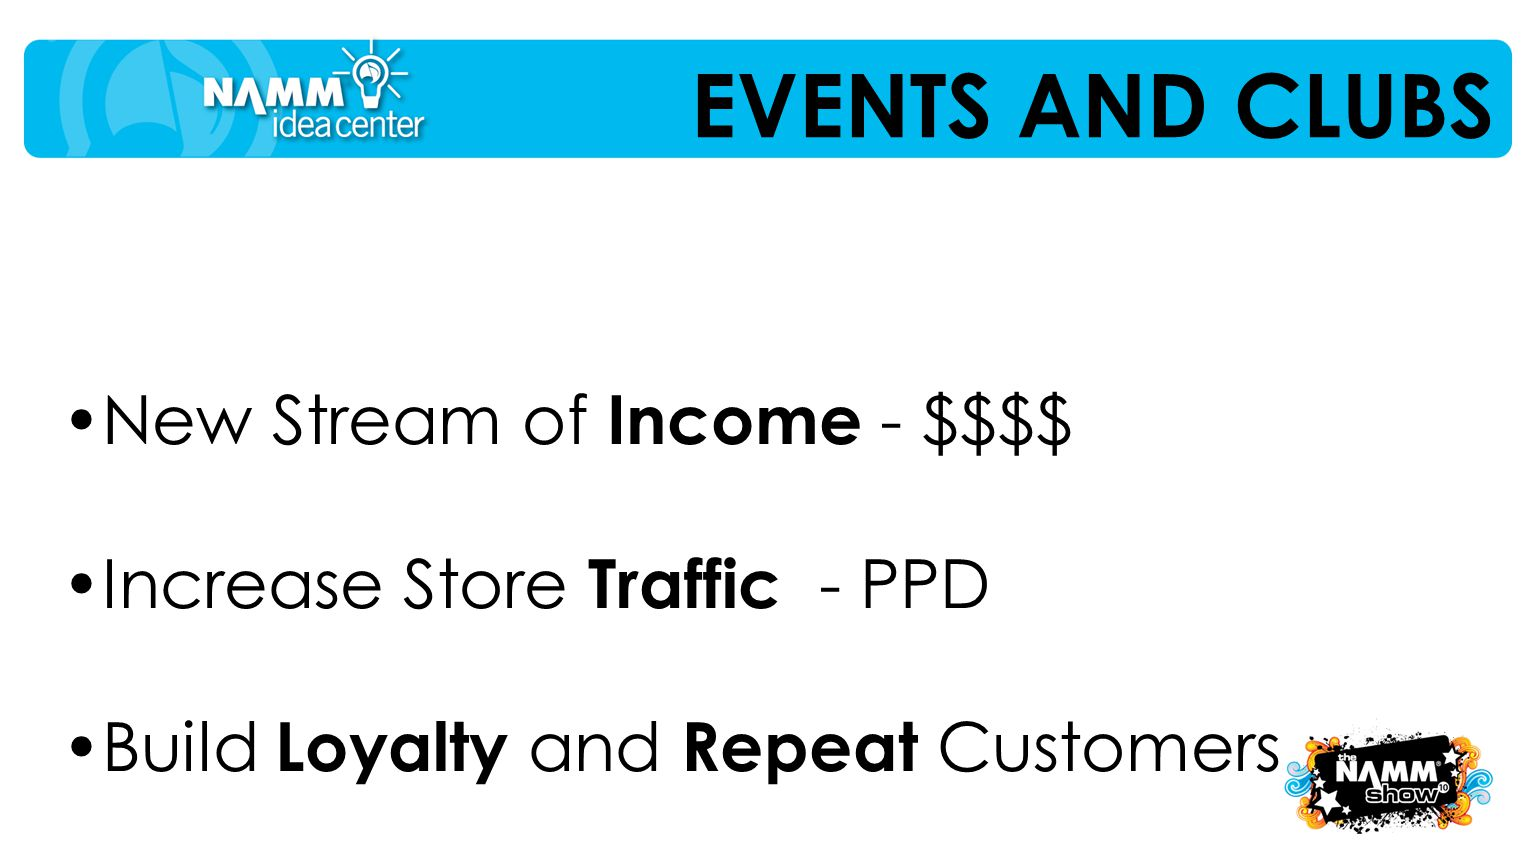 EVENTS AND CLUBS New Stream of Income - $$$$ Increase Store Traffic - PPD Build Loyalty and Repeat Customers